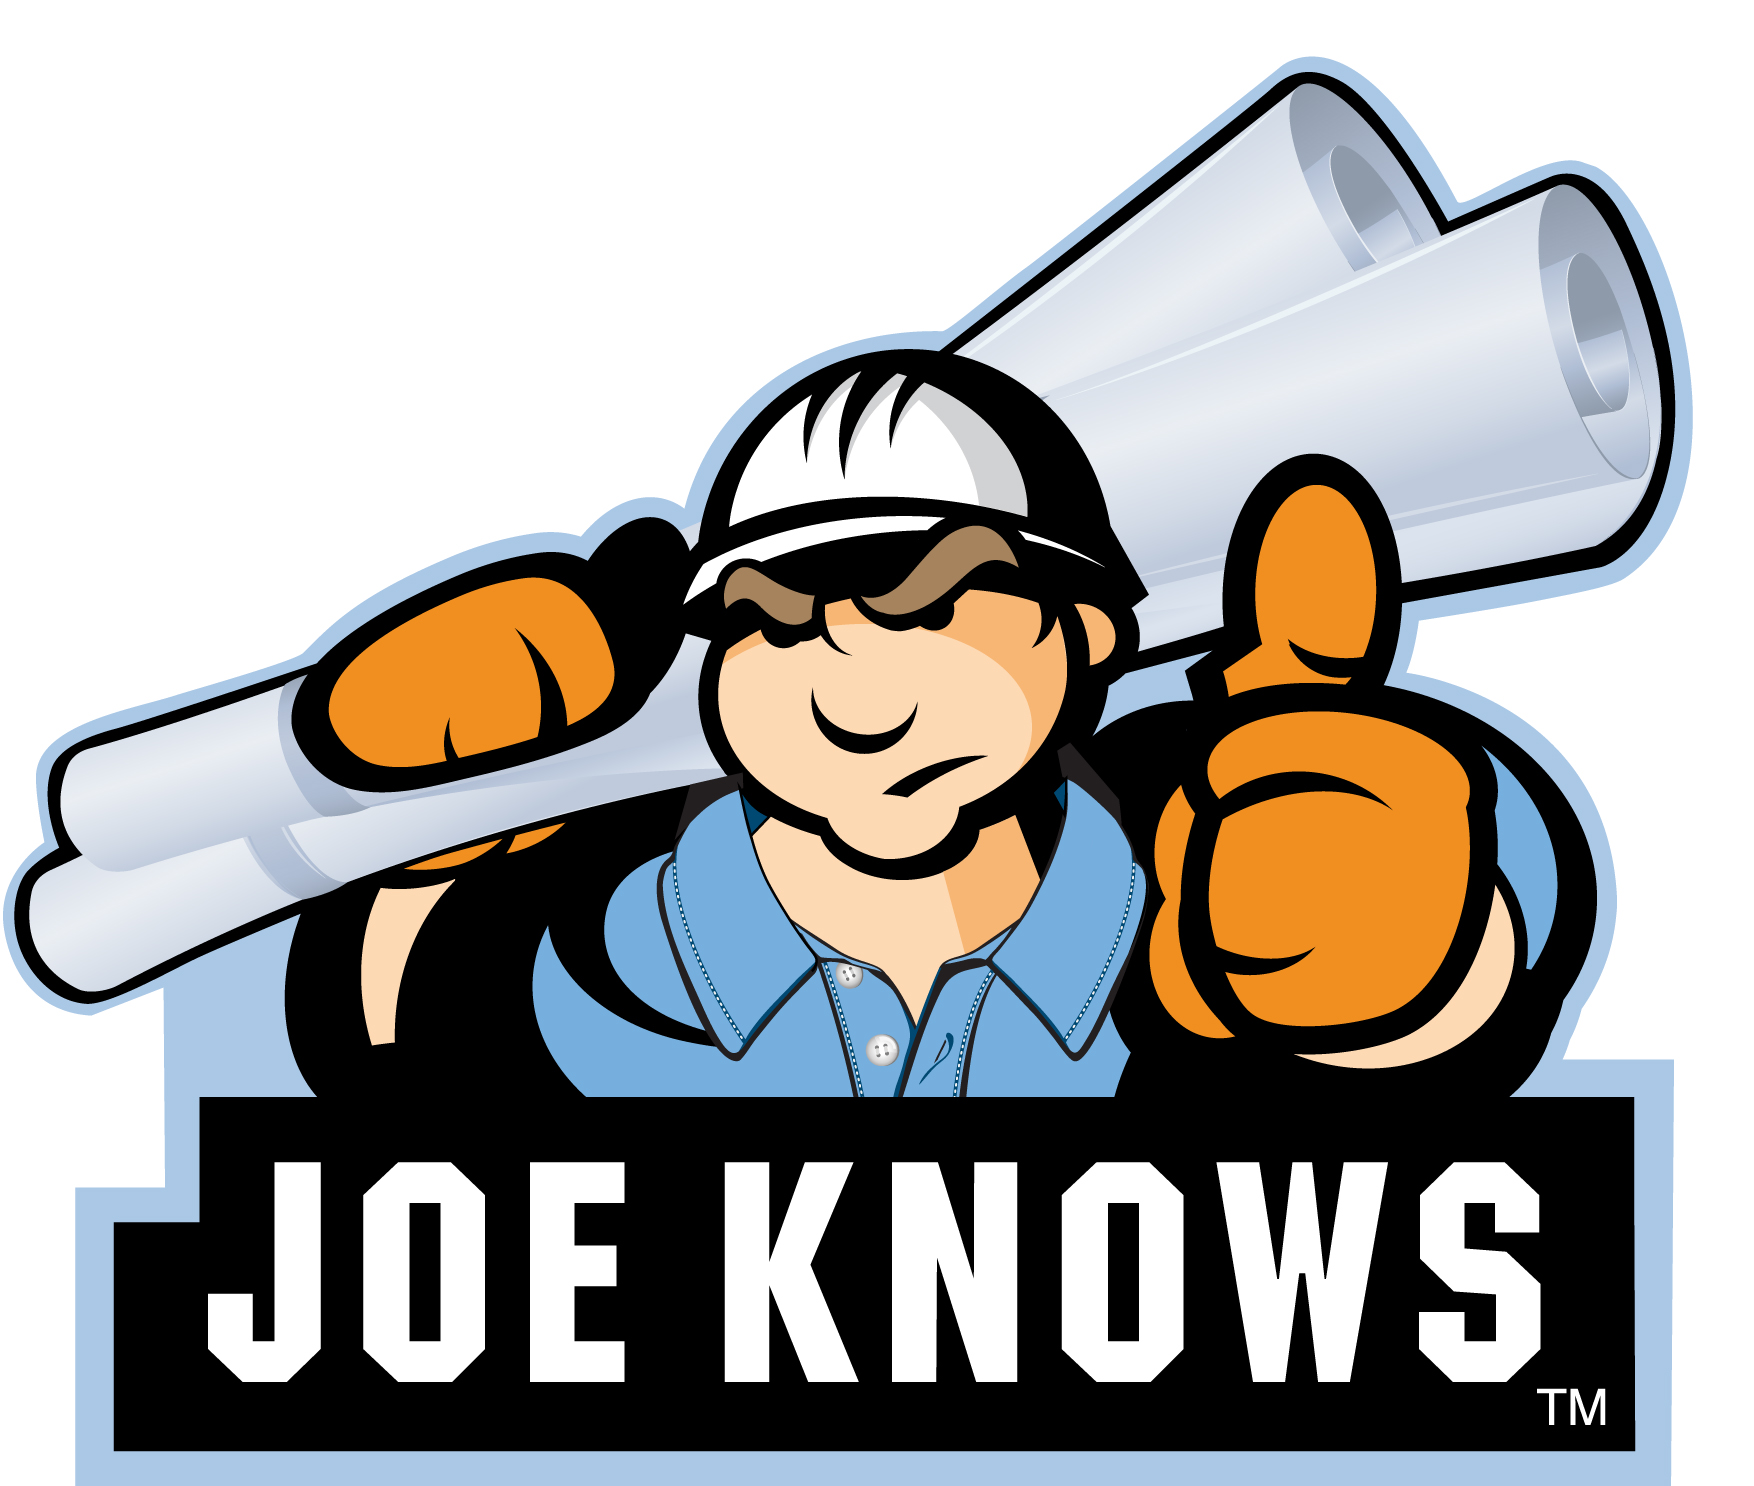 Joe Knows Energy logo